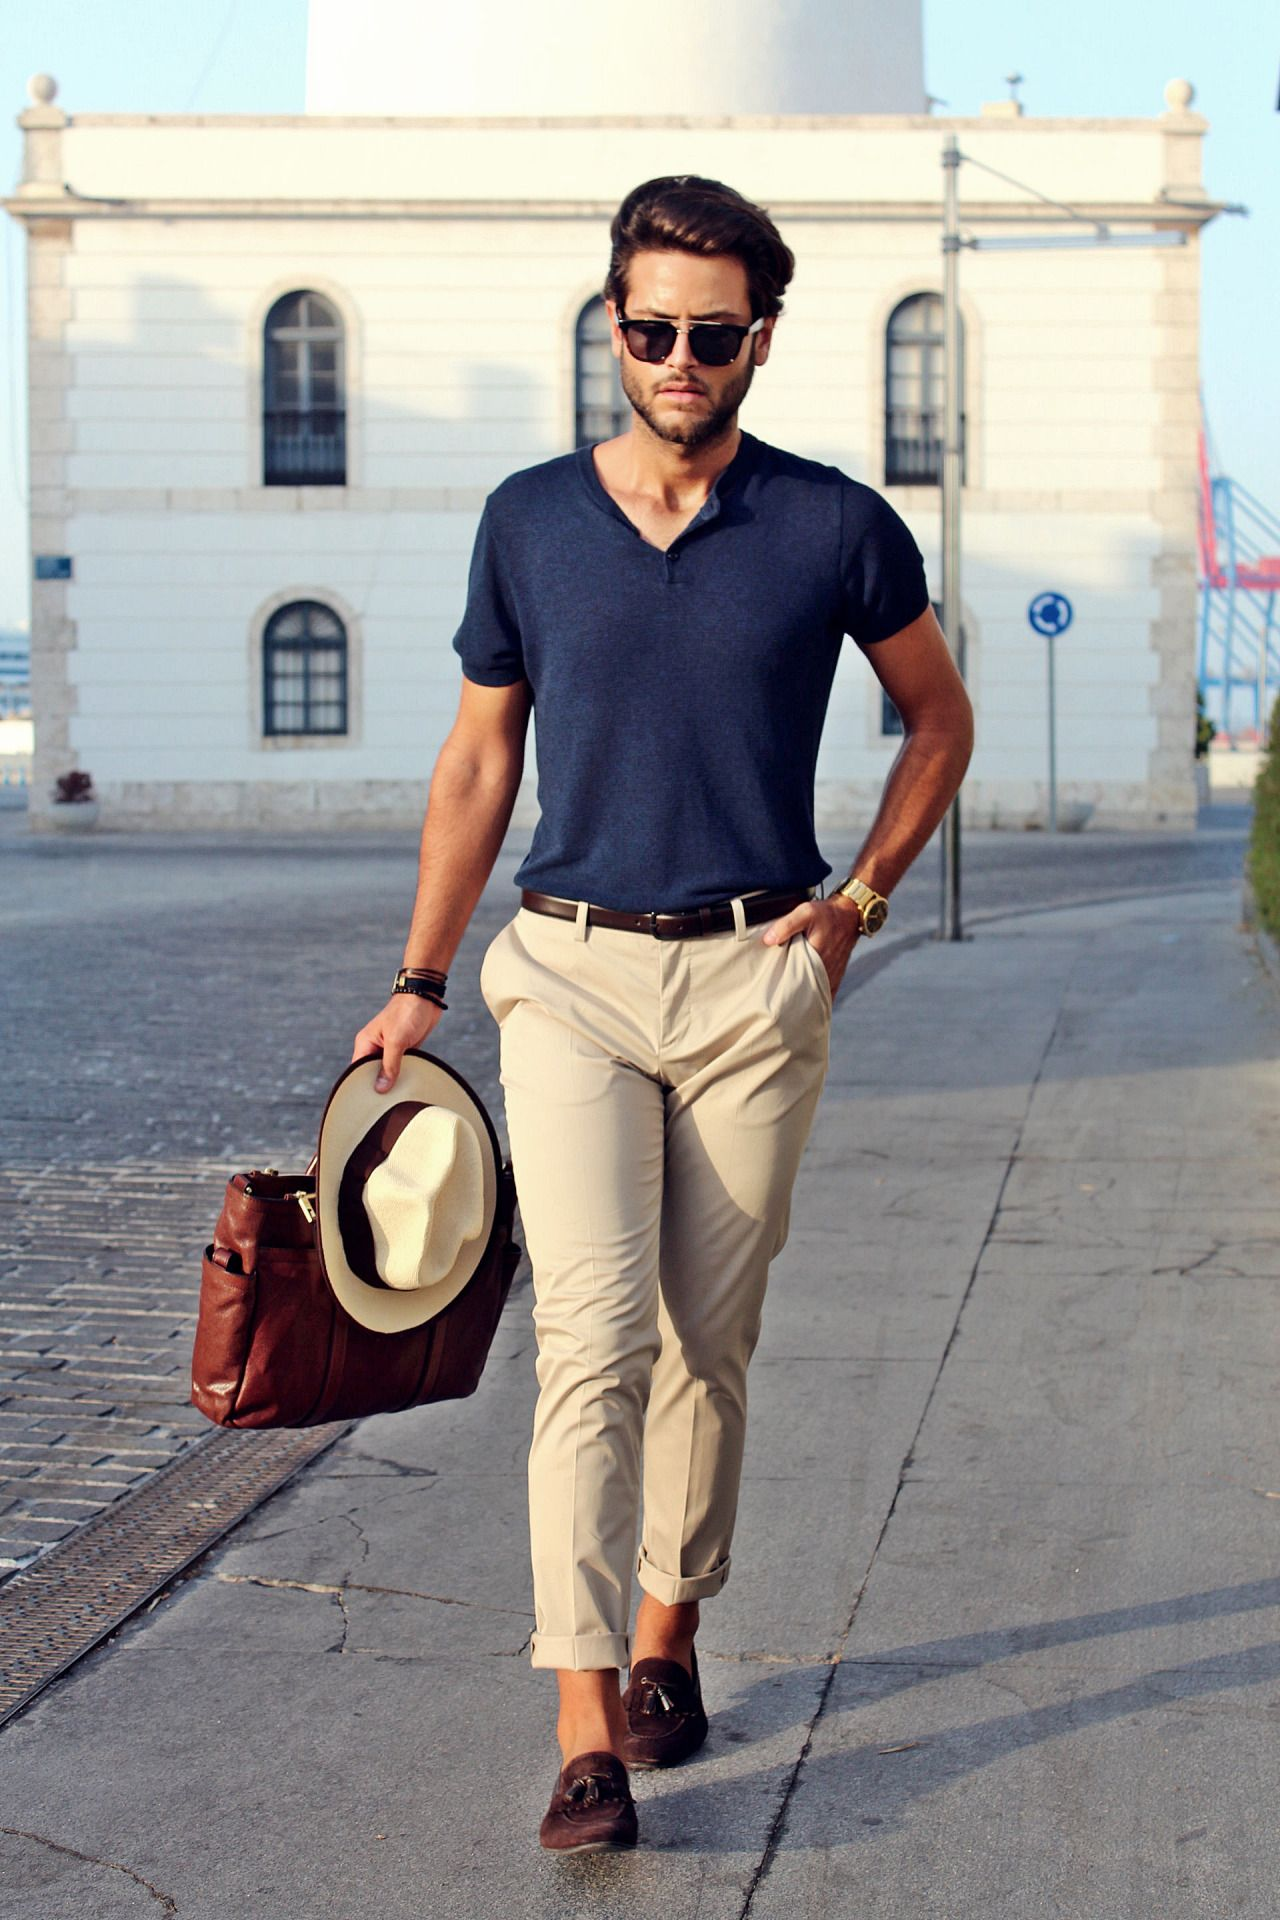 MenStyle1- Men s Style Blog - Summer style inspiration. FOLLOW   Guidomaggi. 87b7c2a117